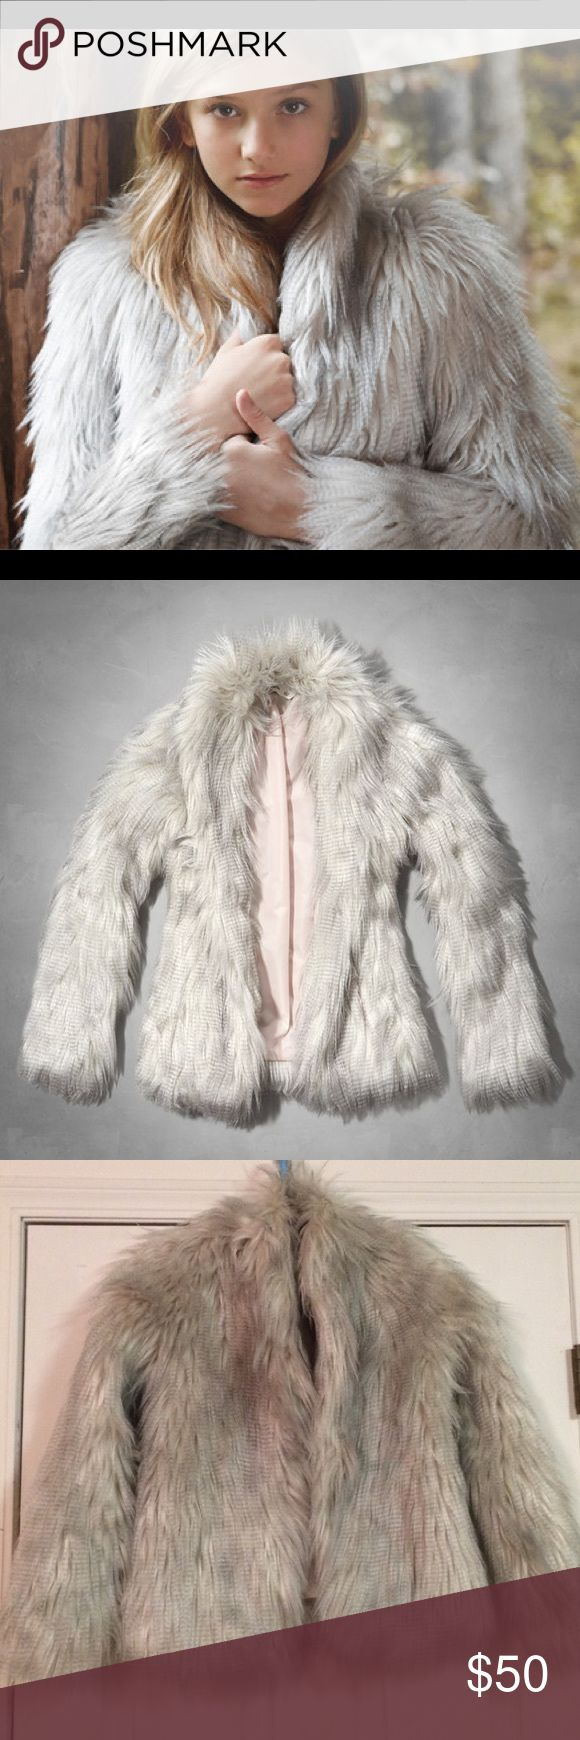 """Beautiful Grey faux fur coat Plush Faux fur Abercrombie Kids jacket size XL. Fits an adult size XXS-S (since there is no closure, it will fit a range of small sizes!) I'm an XS and it fits perfect.  Shoulder to shoulder 13"""" Armpit to armpit 17"""" Top to bottom 25"""" Abercrombie & Fitch Jackets & Coats Pea Coats"""